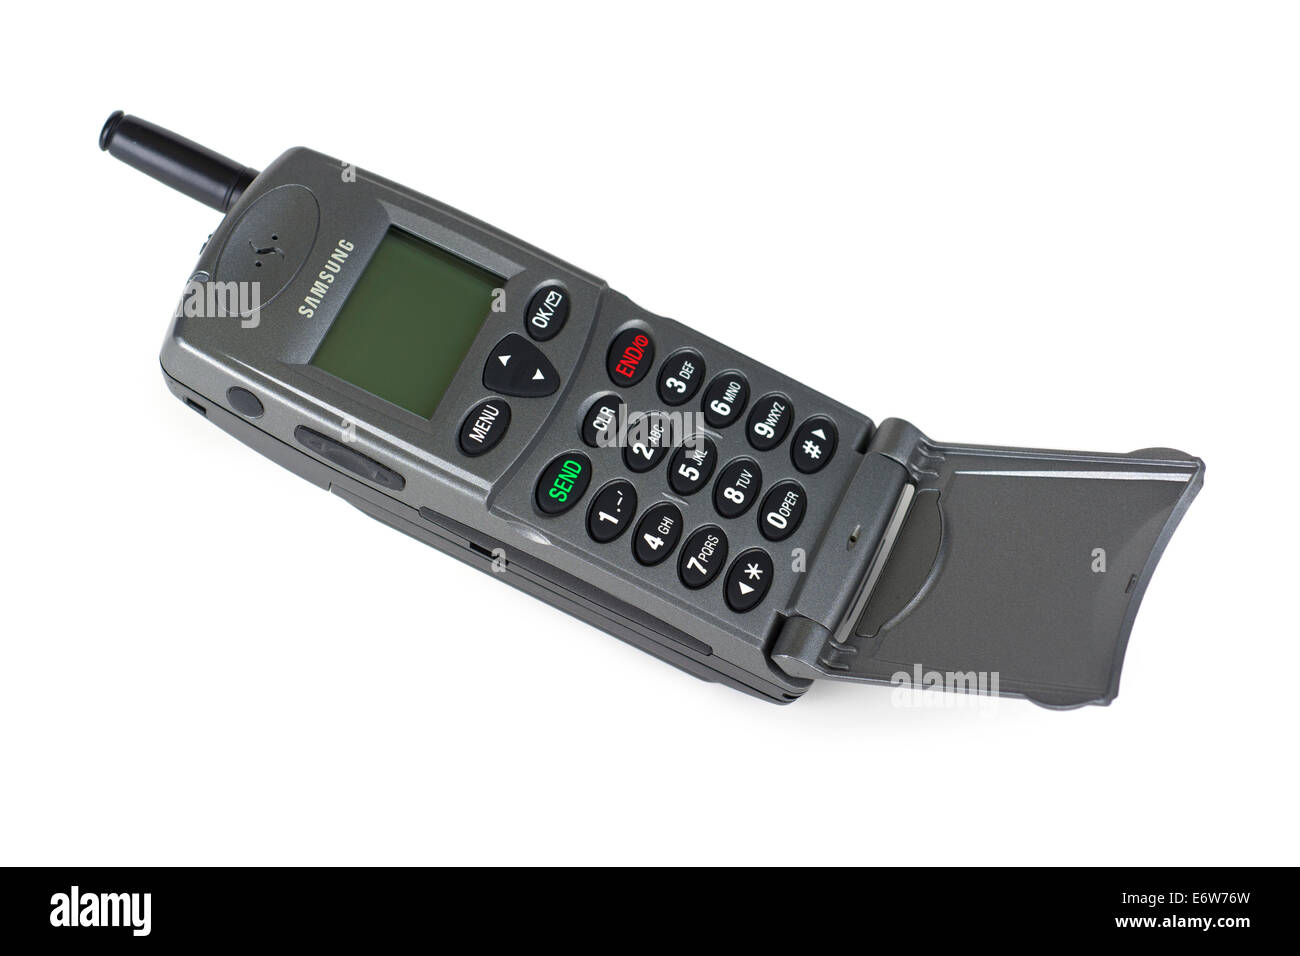 Old Mobile Phone, Old Cell Phone, Samsung Model - Stock Image